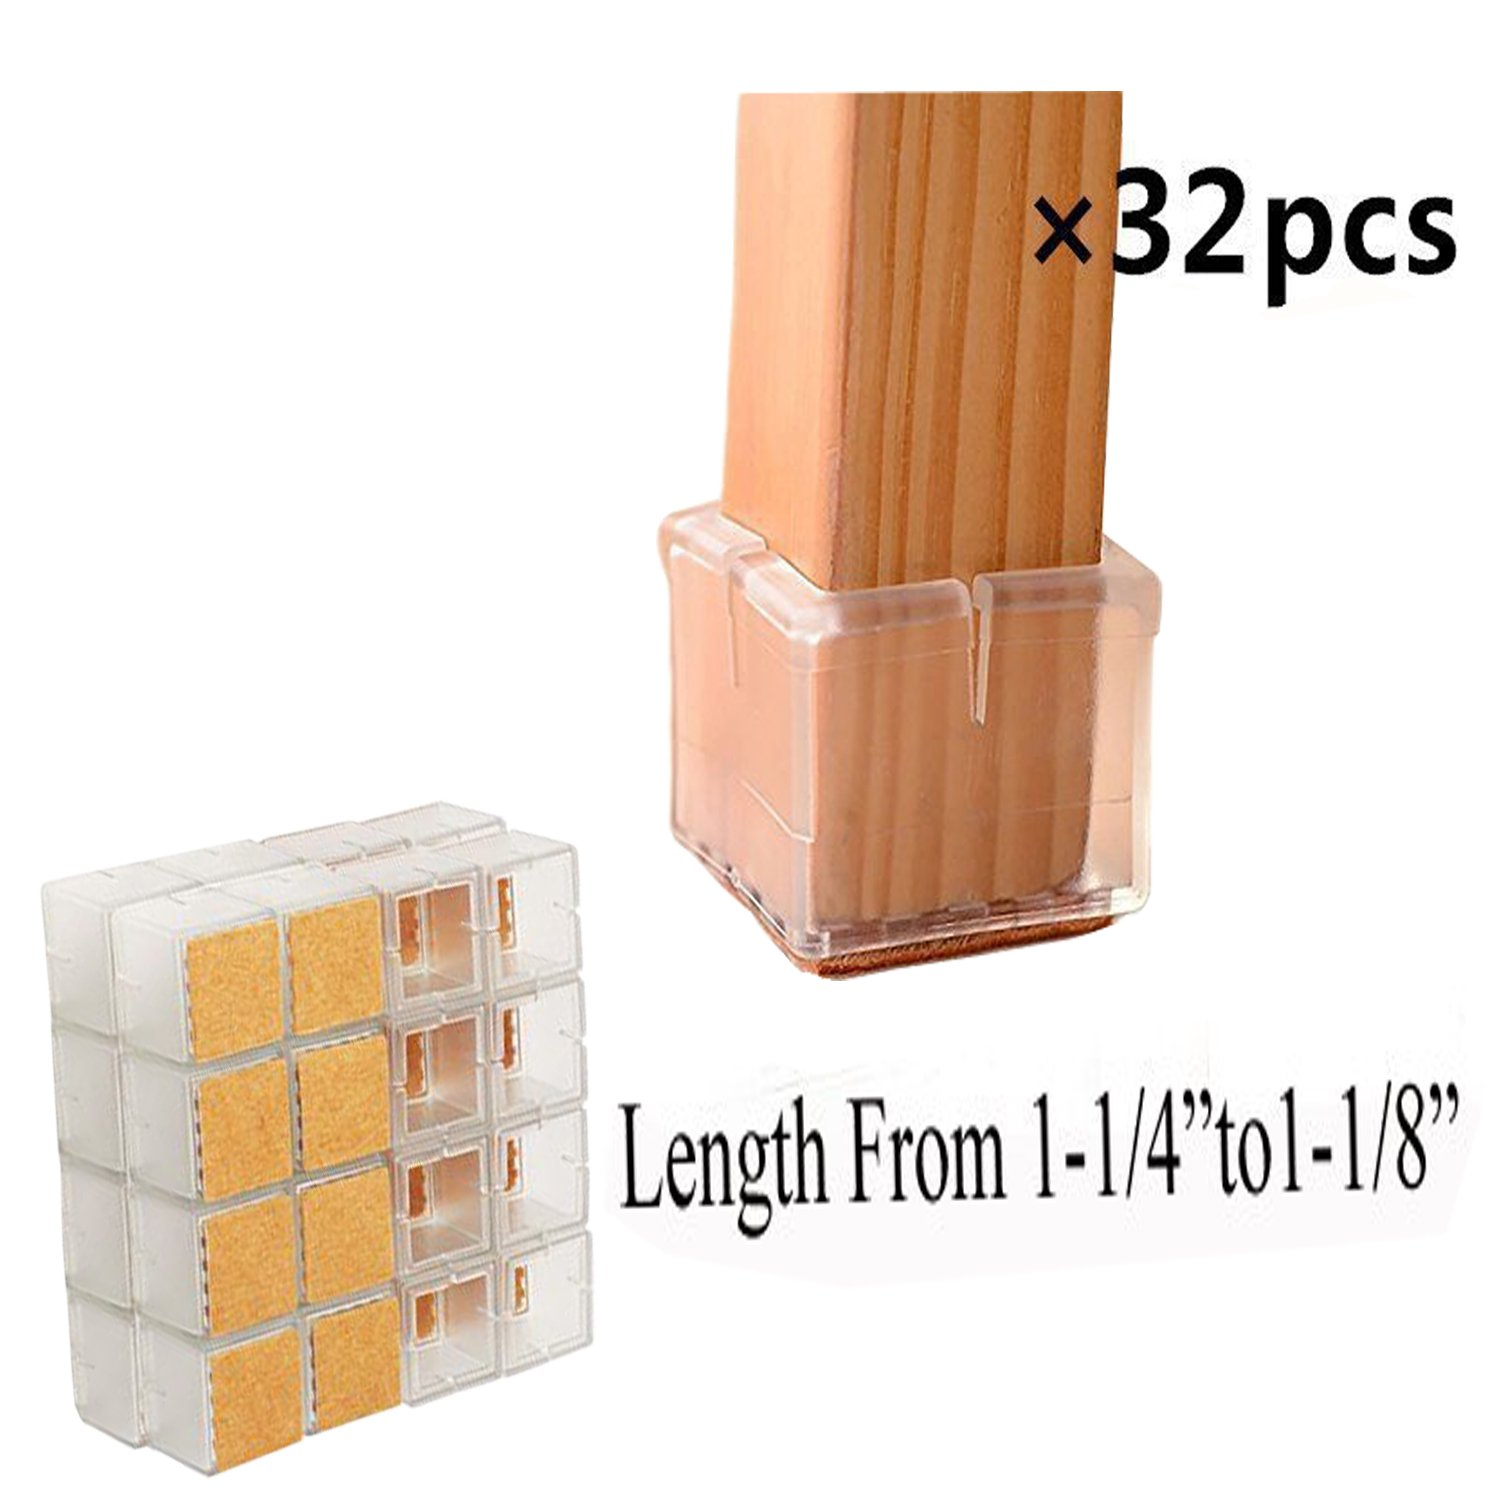 "32 Pack Square Chair Leg Caps Veoley/Durable Chair Leg Pads/Wood Floor Protector/Furniture Table Leg Caps/Silicone Table Furniture Leg Feet Tips Covers Caps/Fit Length 1-1/4""to 1-1/8"""